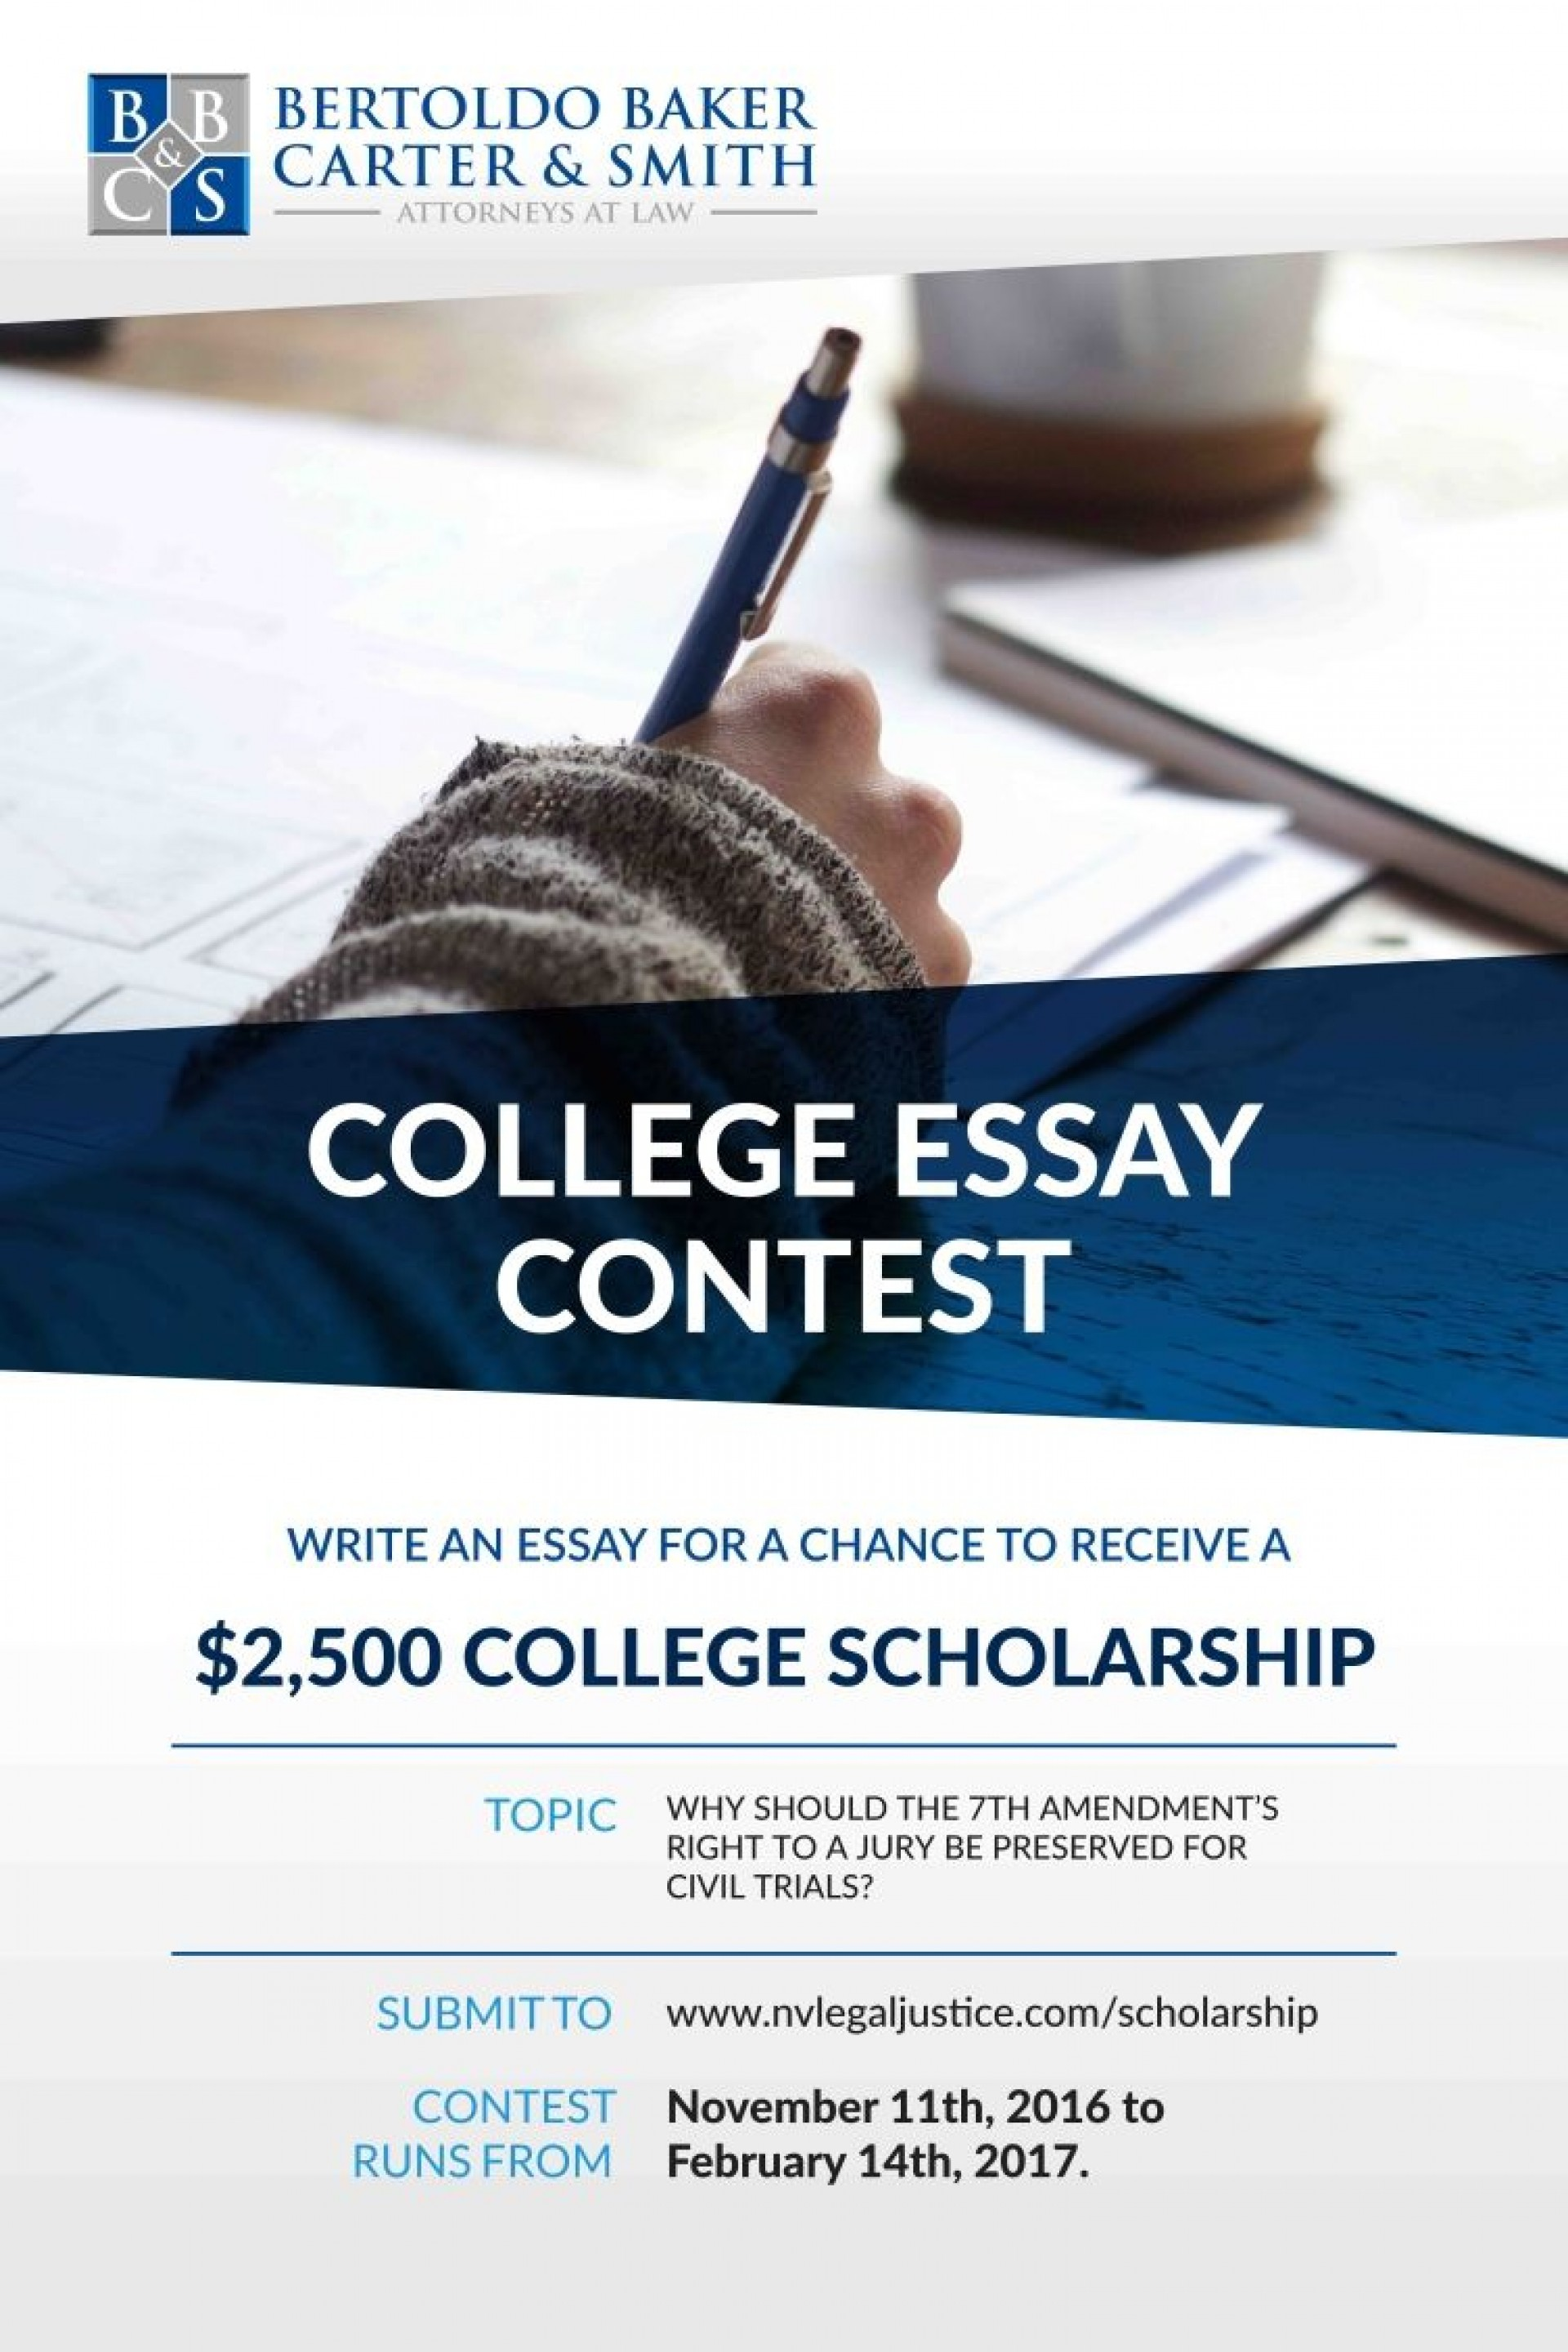 014 Essay Contests For High School Students Staggering 2017 1920